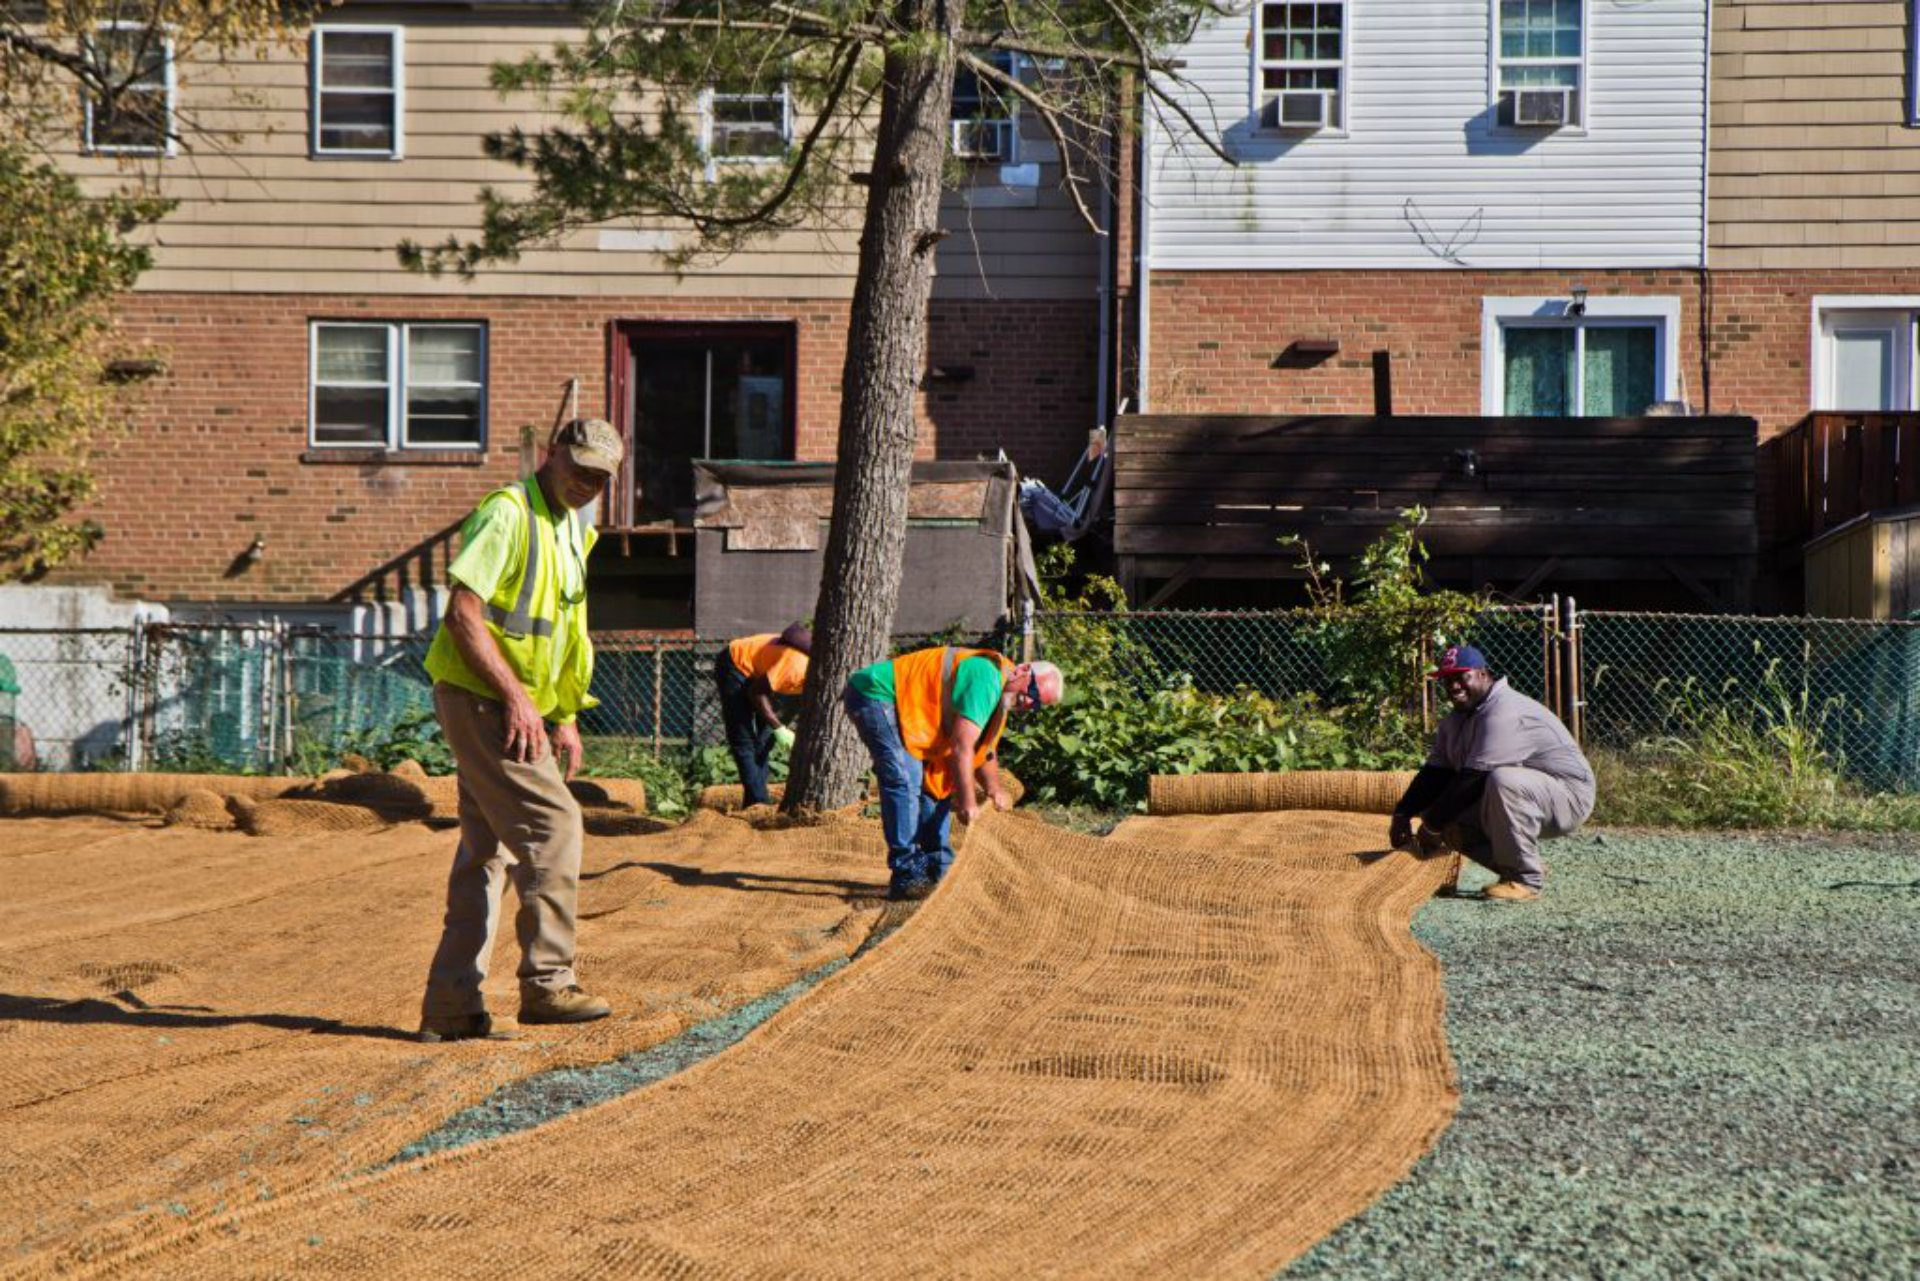 Workers lay coir matting, which is made of coconut fiber that will break down in 2-3 years, but protect hydro seed from water erosion. (Kimberly Paynter/WHYY)